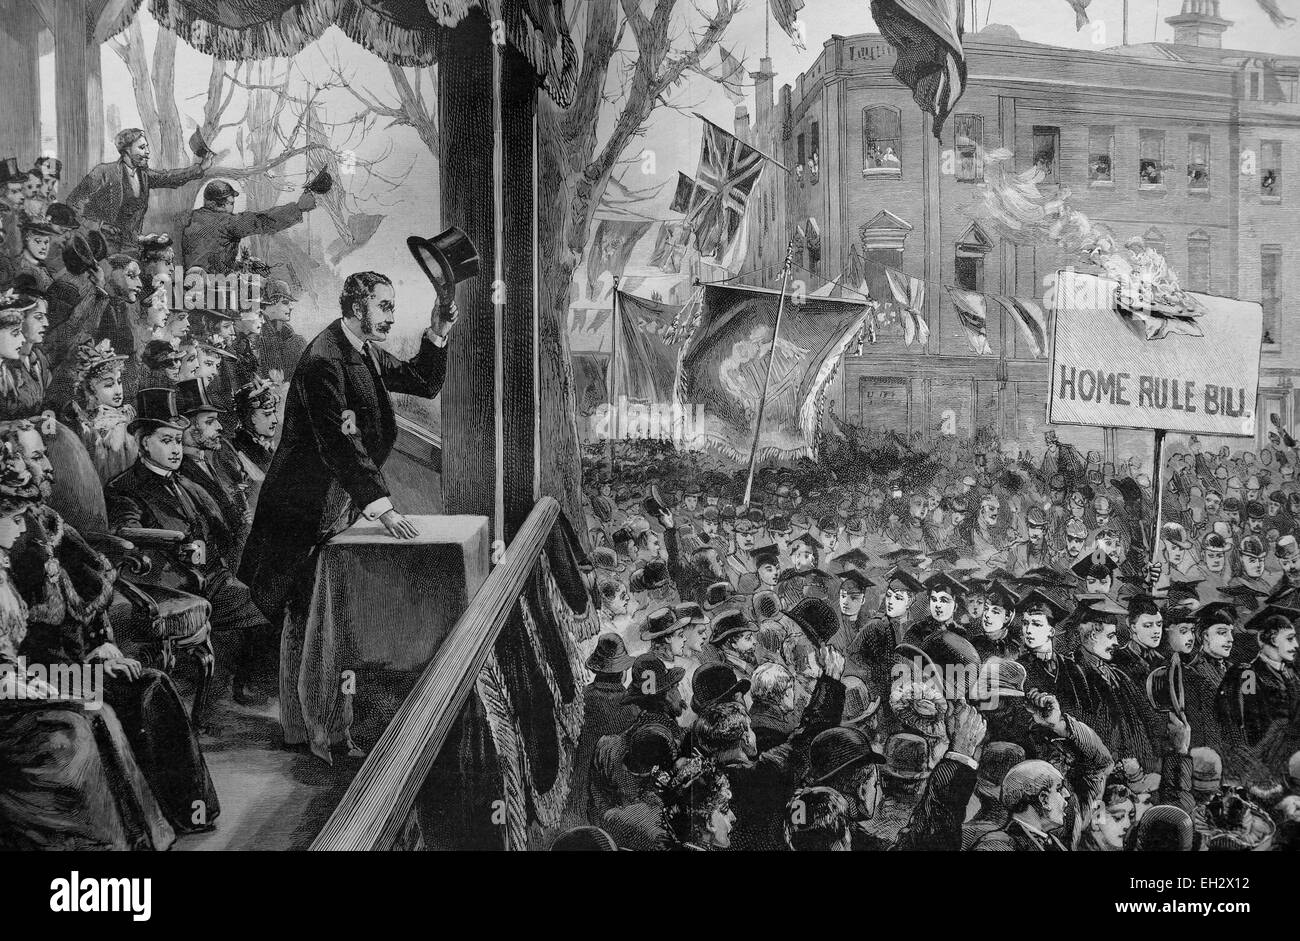 The protest against the Home Rule Bill in Belfast, left Arthur Balfour, Chief Secretary for Ireland, historical - Stock Image